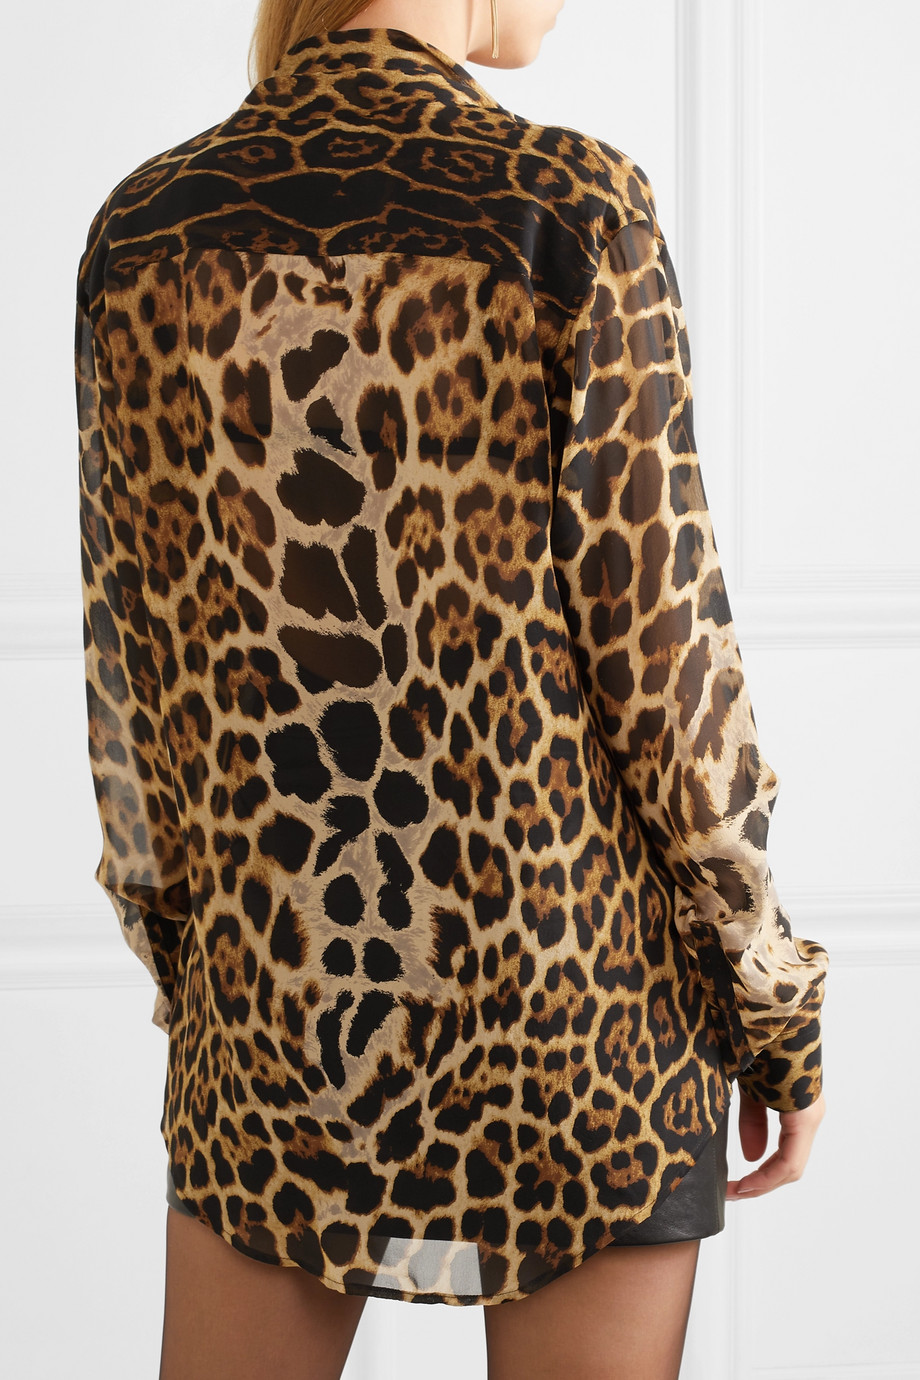 b21020826baa4 Saint Laurent Pussy-bow leopard-print silk-georgette blouse